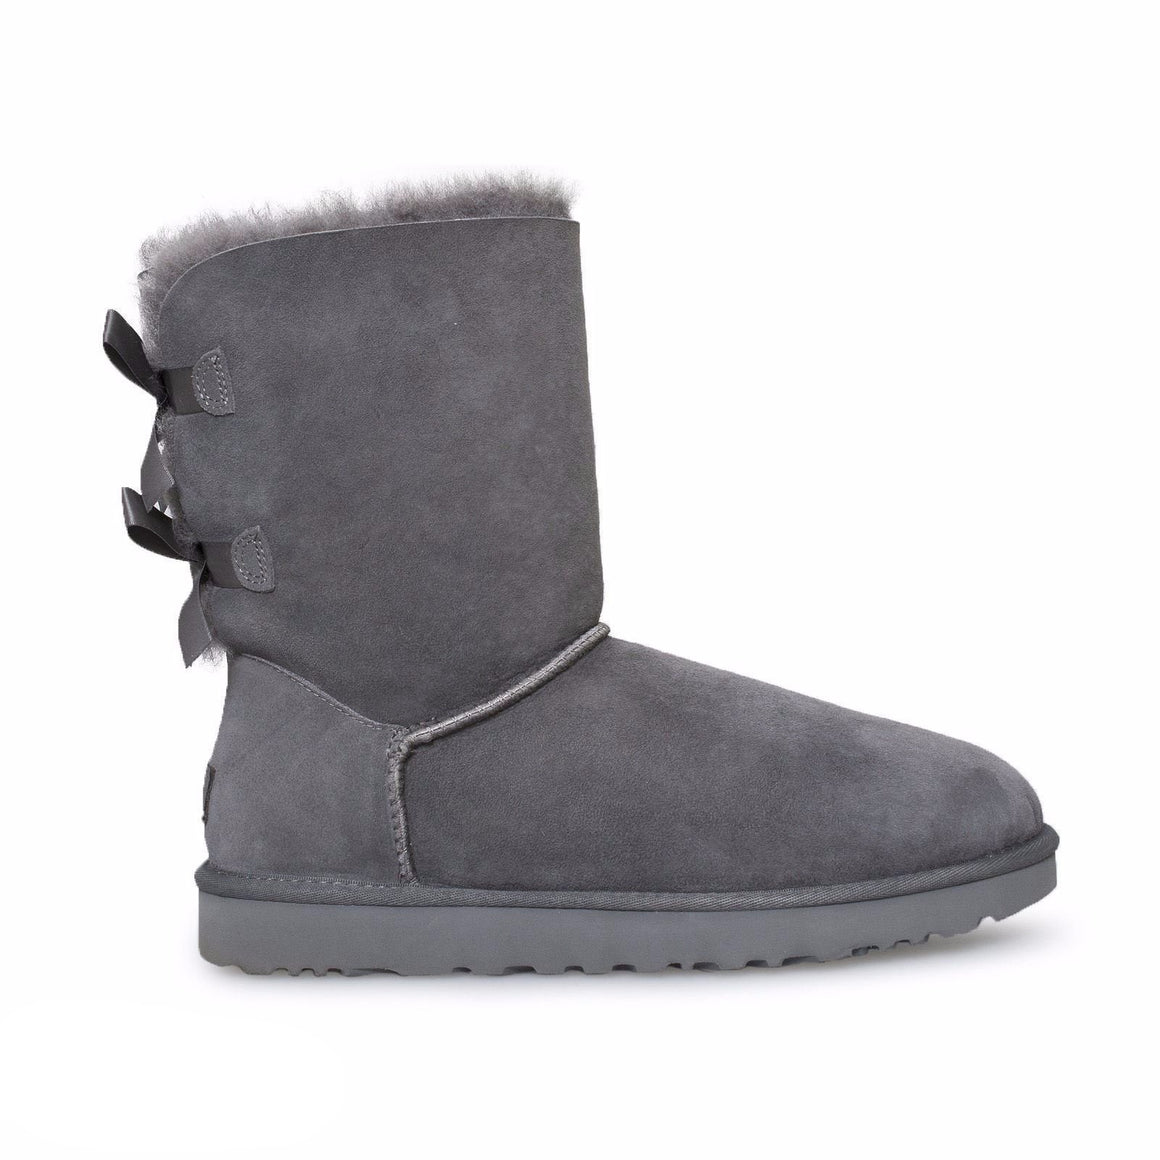 UGG Bailey Bow ii Grey Boots - Youth